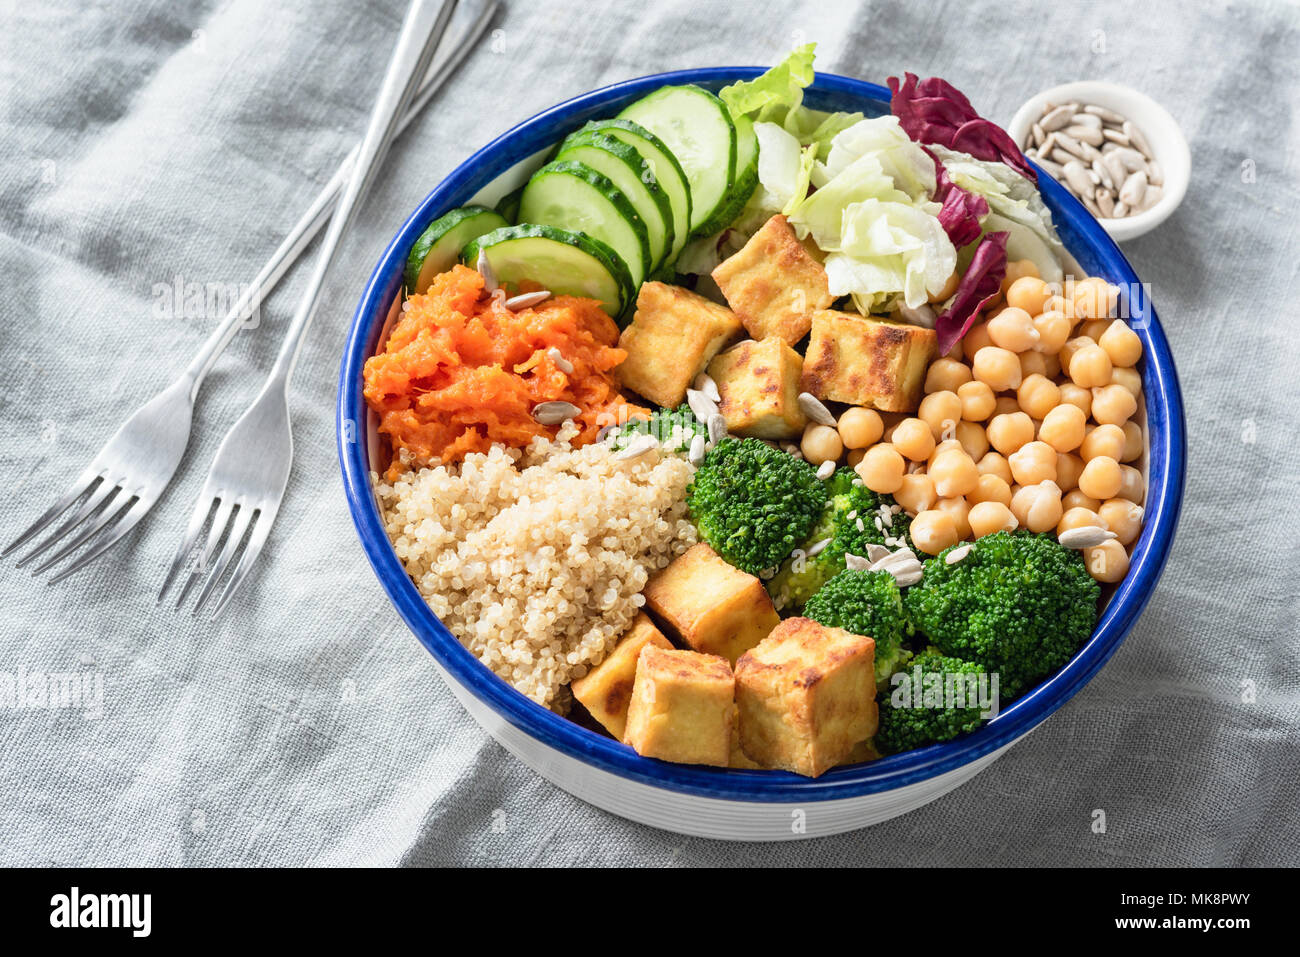 Nourishing buddha bowl with tofu, quinoa and vegetables. Healthy eating, healthy lifestyle, vegan food, vegetarian diet, modern lifestyle concept. Col - Stock Image